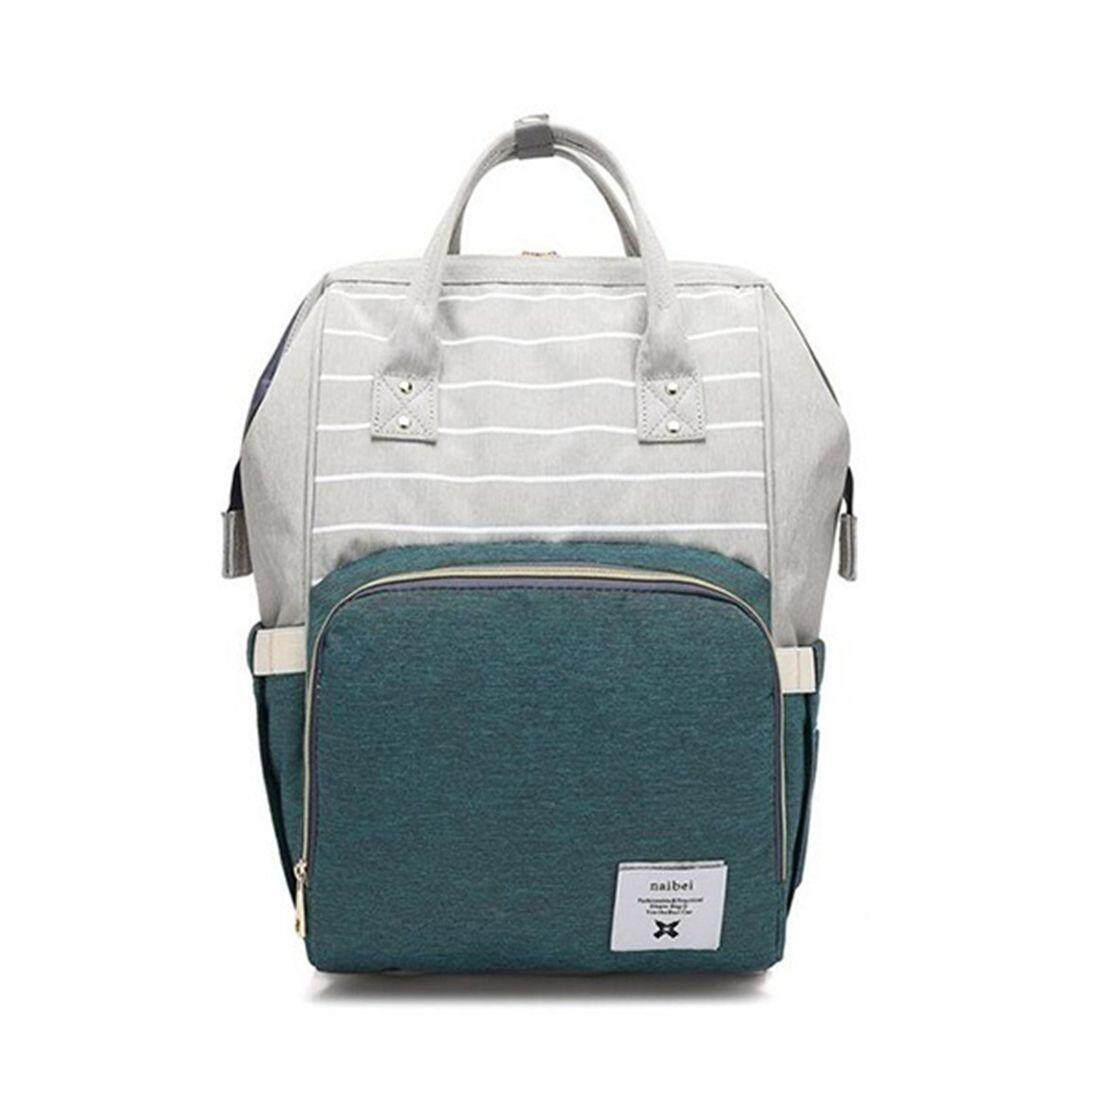 Green Fashion Diapers Large-capacity Multi-function Care Bag Children Travel Striped Backpack Baby Diaper Bag Feeding Bottle Treasure Mother Out Backpack Waterproof Trolley Bag หาซื้อได้ที่ไหนt